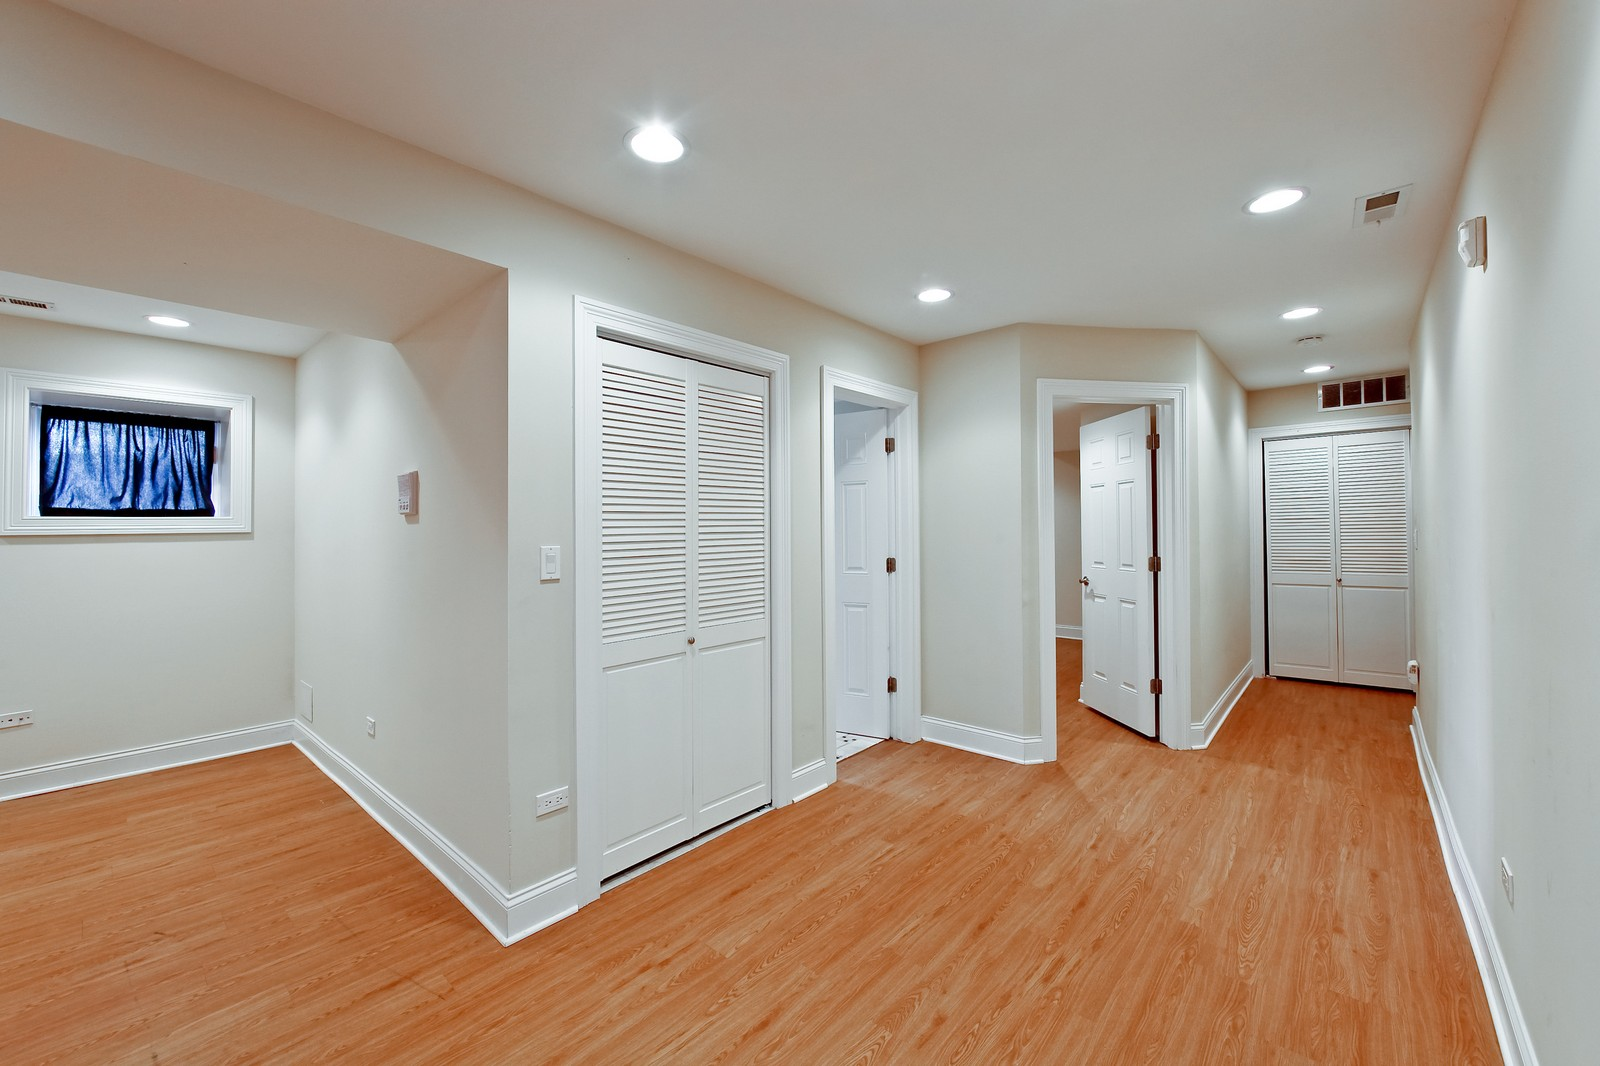 Real Estate Photography - 942 N Fairfield, Unit 1W, Chicago, IL, 60622 - Lower Level